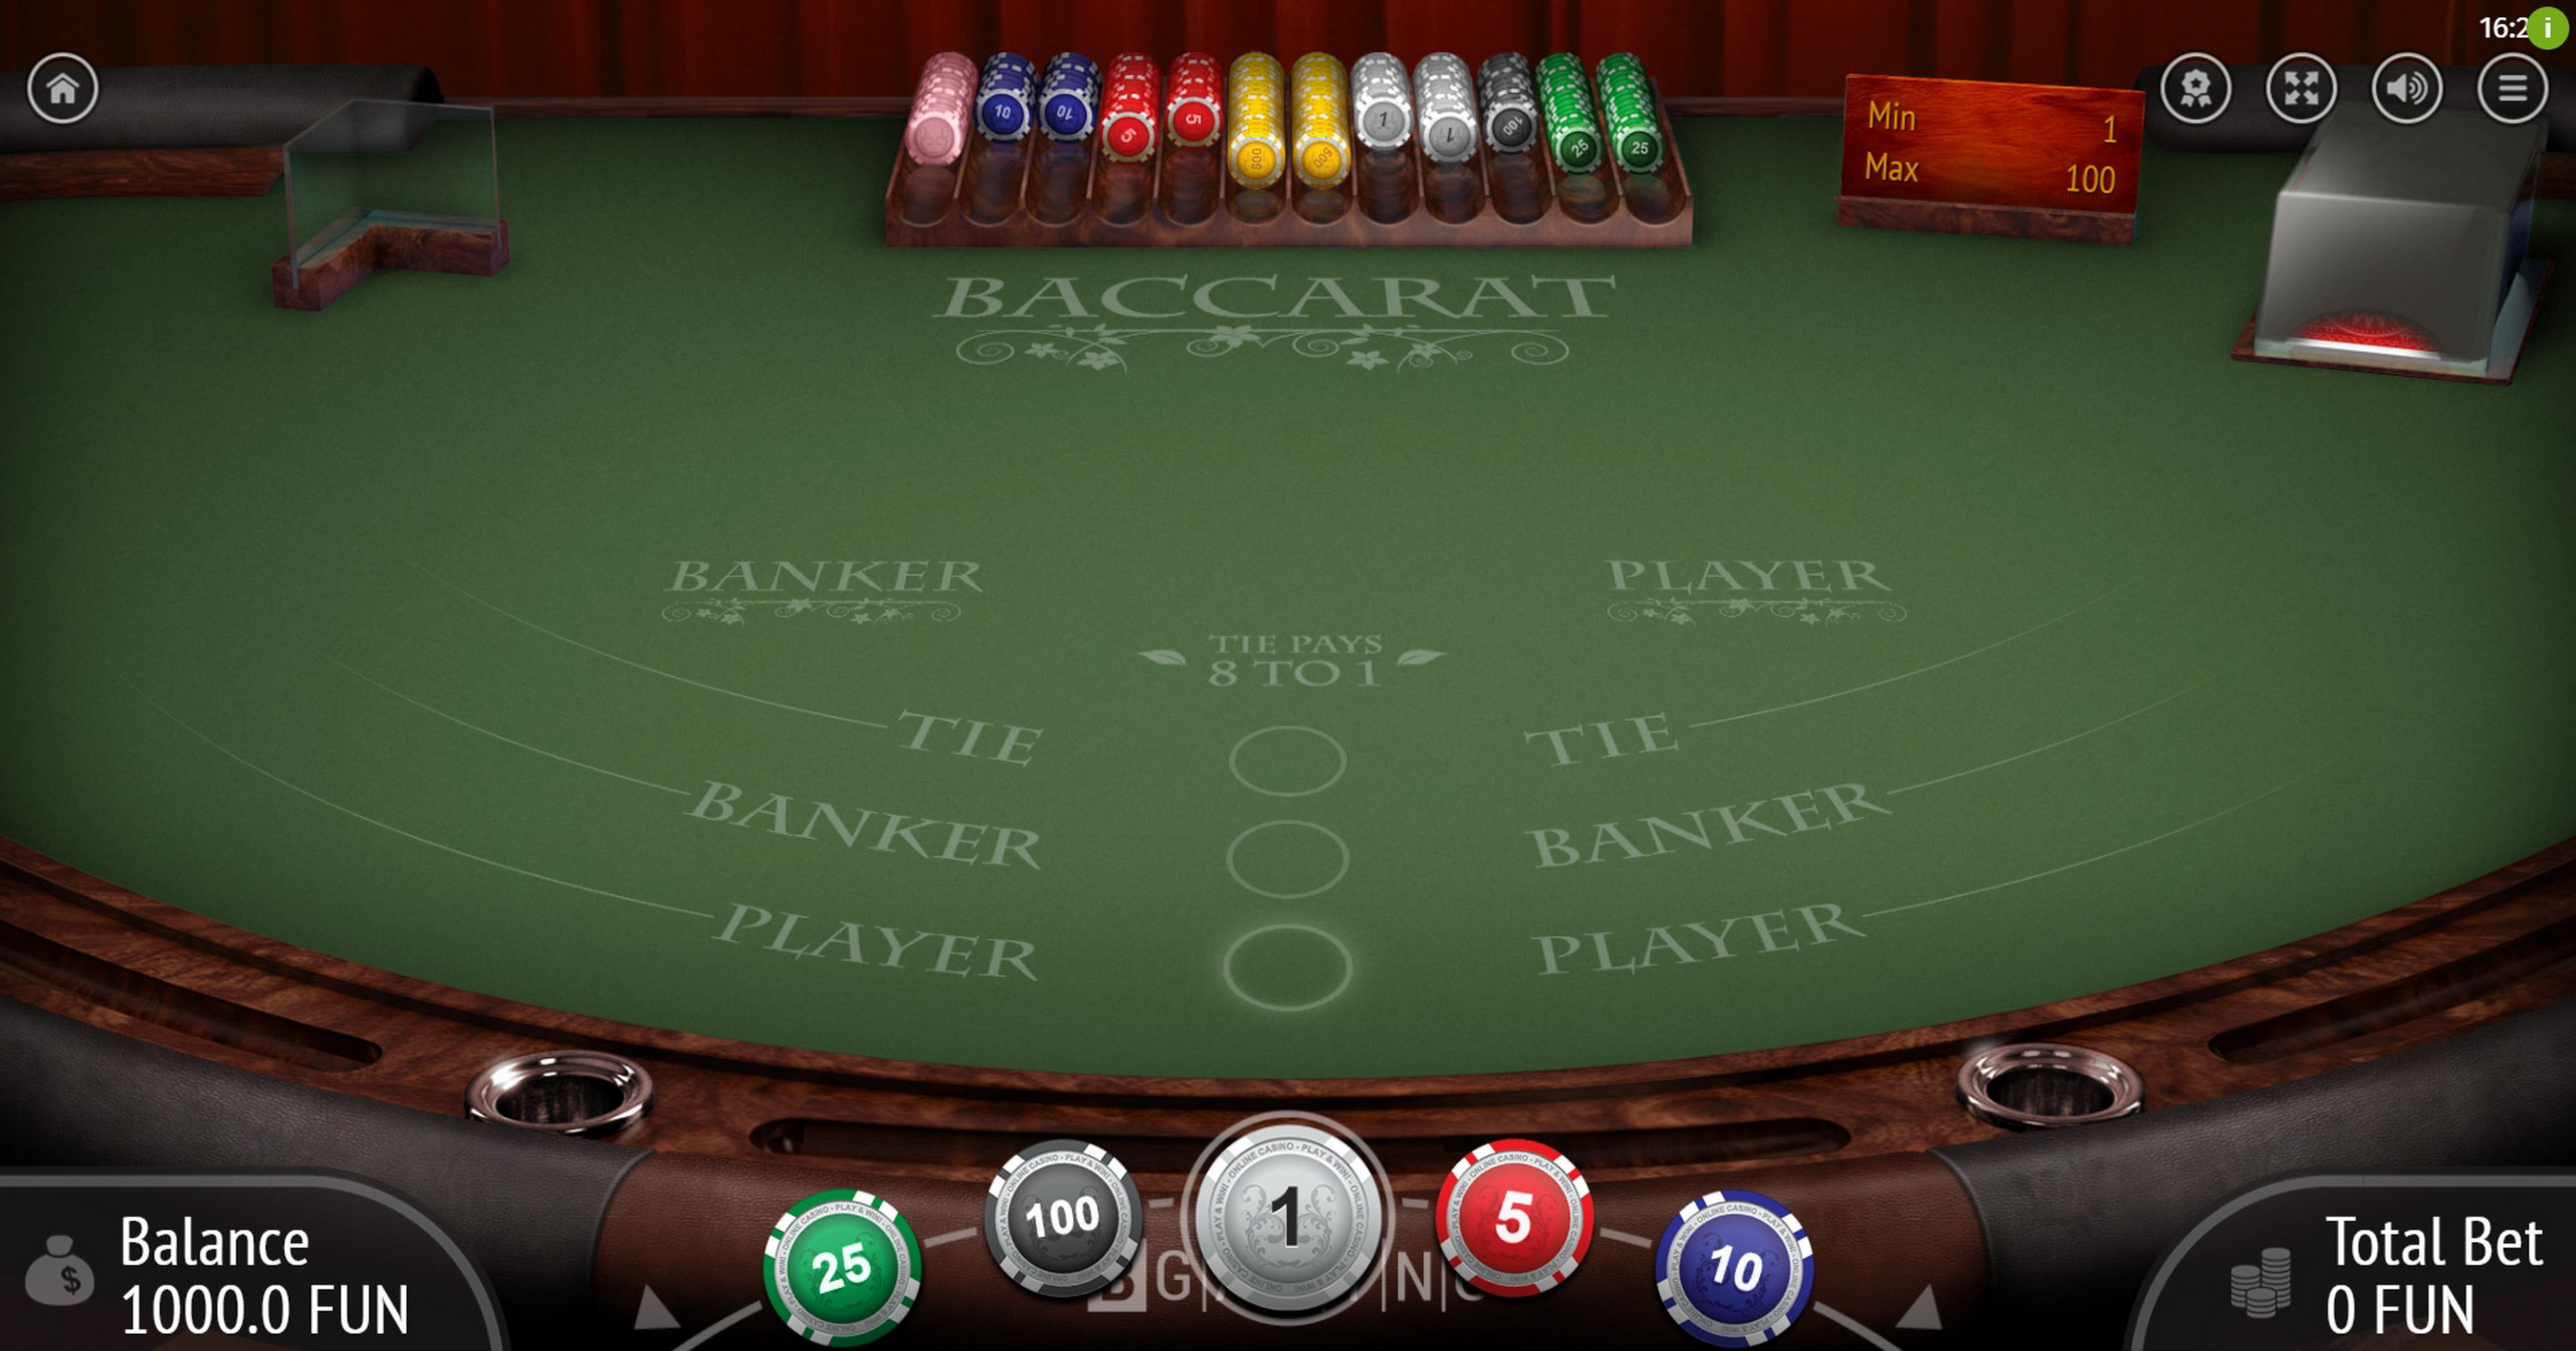 Reels in Baccarat (BGaming) Slot Game by BGAMING